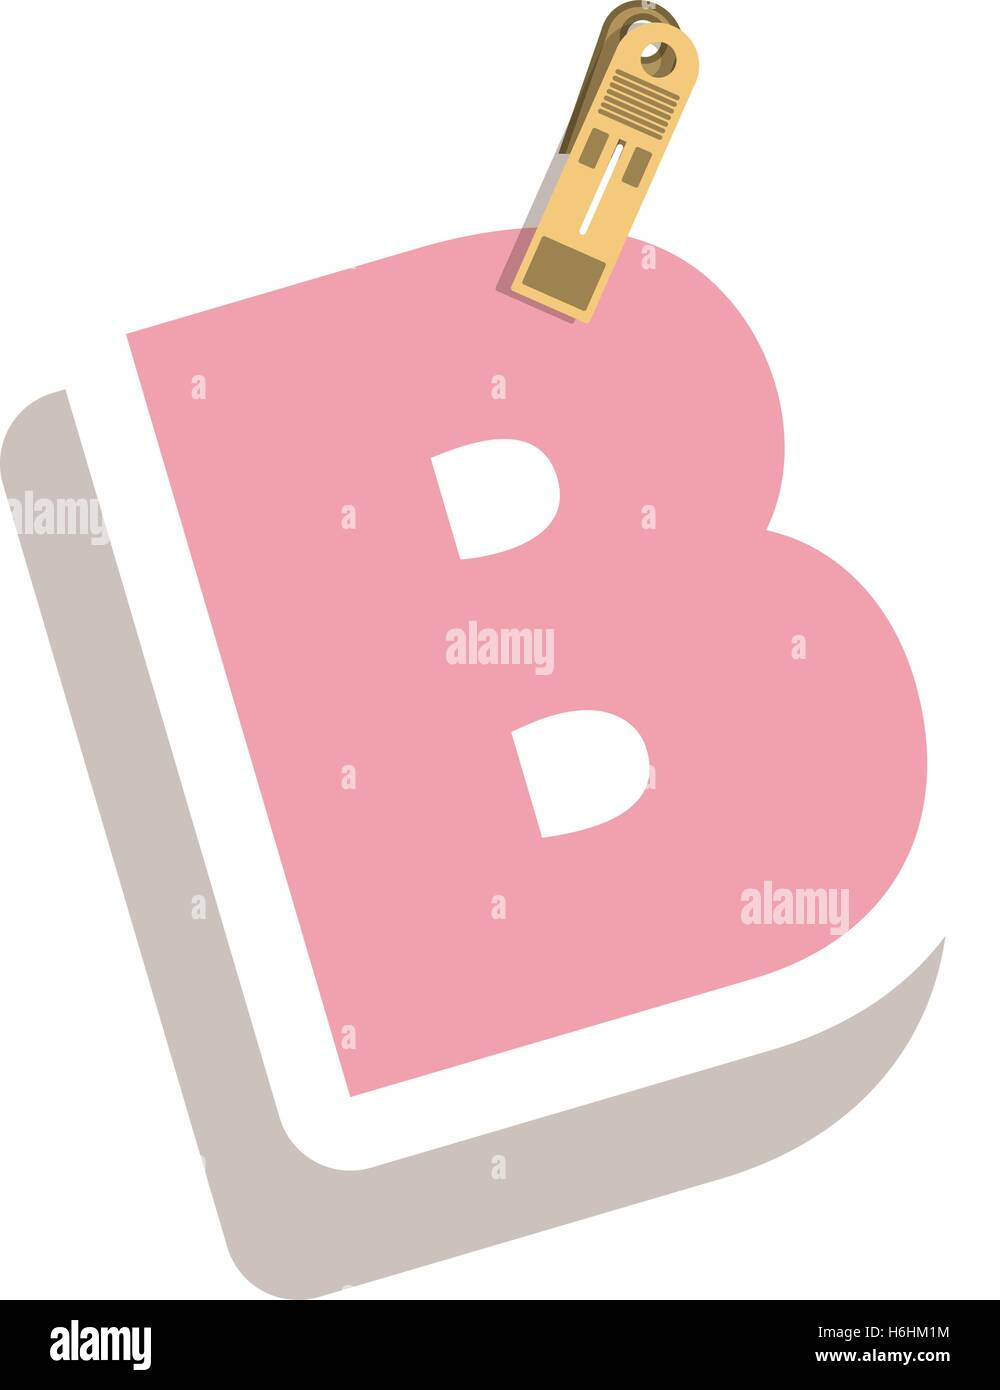 Letter B Stock Vector Images - Alamy